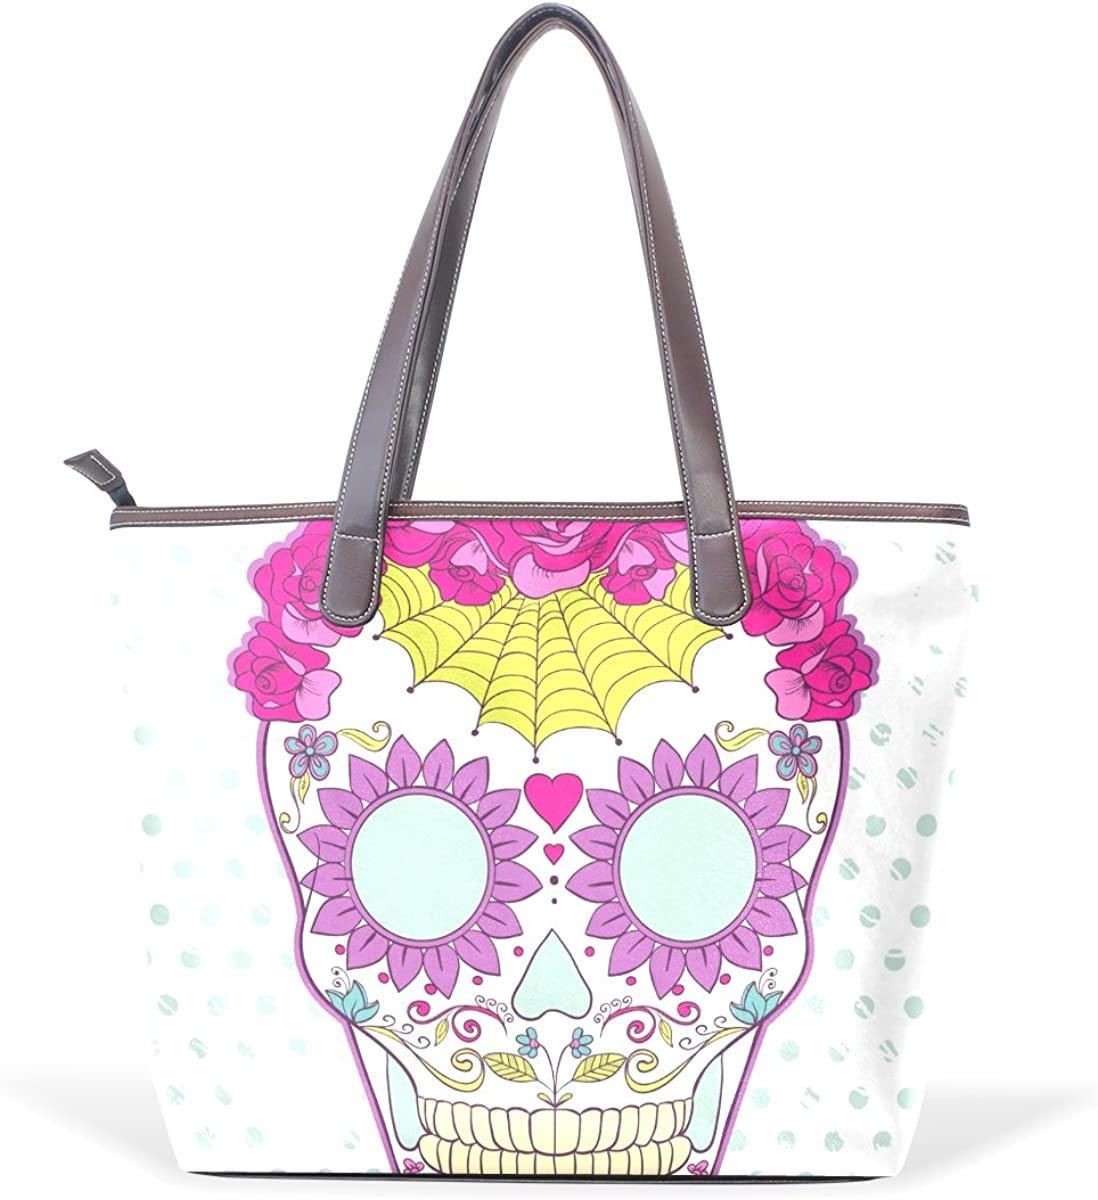 IMOBABY Womens Large Handbags Tote Bags Colorful Sugar Skull Patern Leather Top Handle Shoulder Bags,Ts070